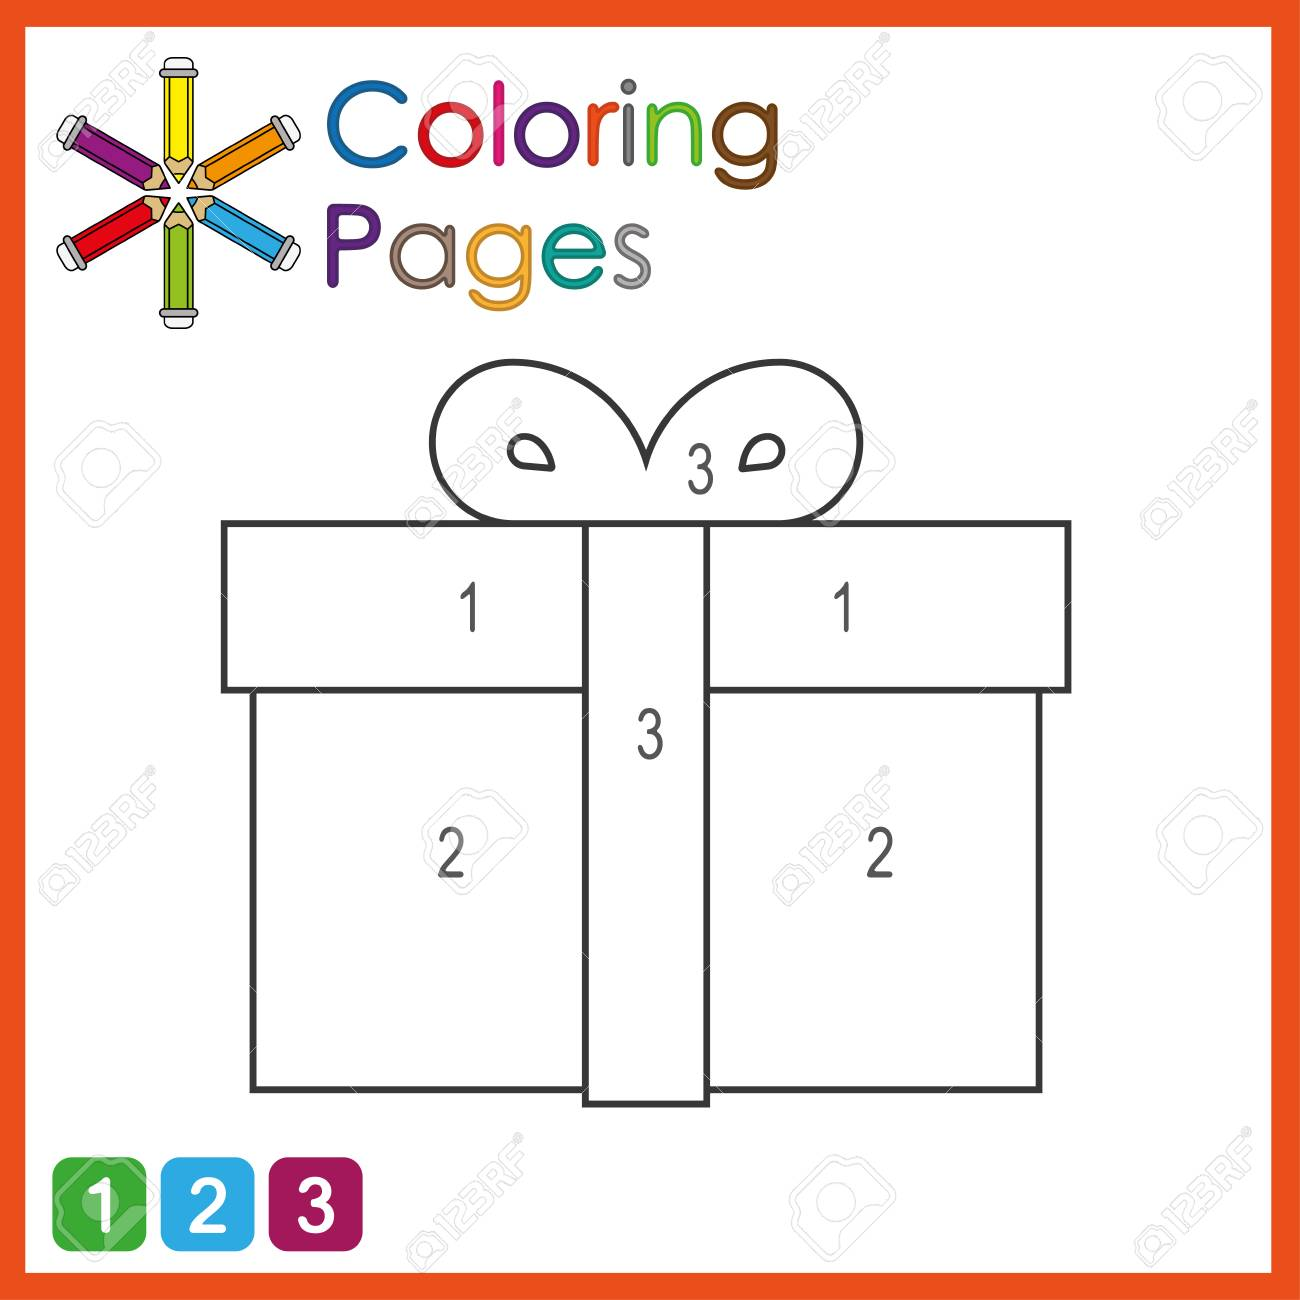 coloring page for kids, color the parts of the object according to numbers, color by numbers, activity pages - 122858949